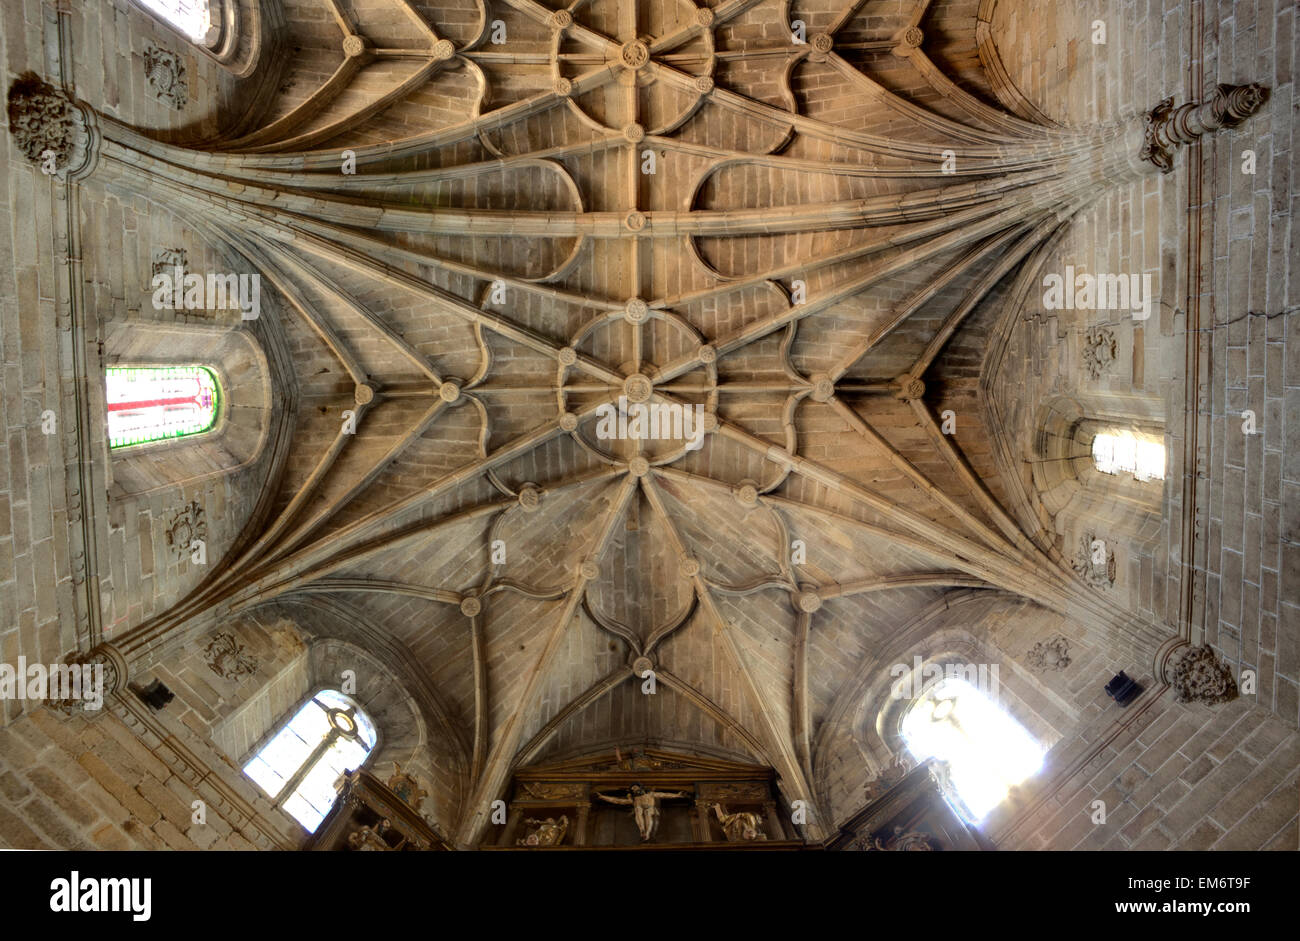 Typcal Gothic cross vault made of granite stone, Caceres, Spain - Stock Image